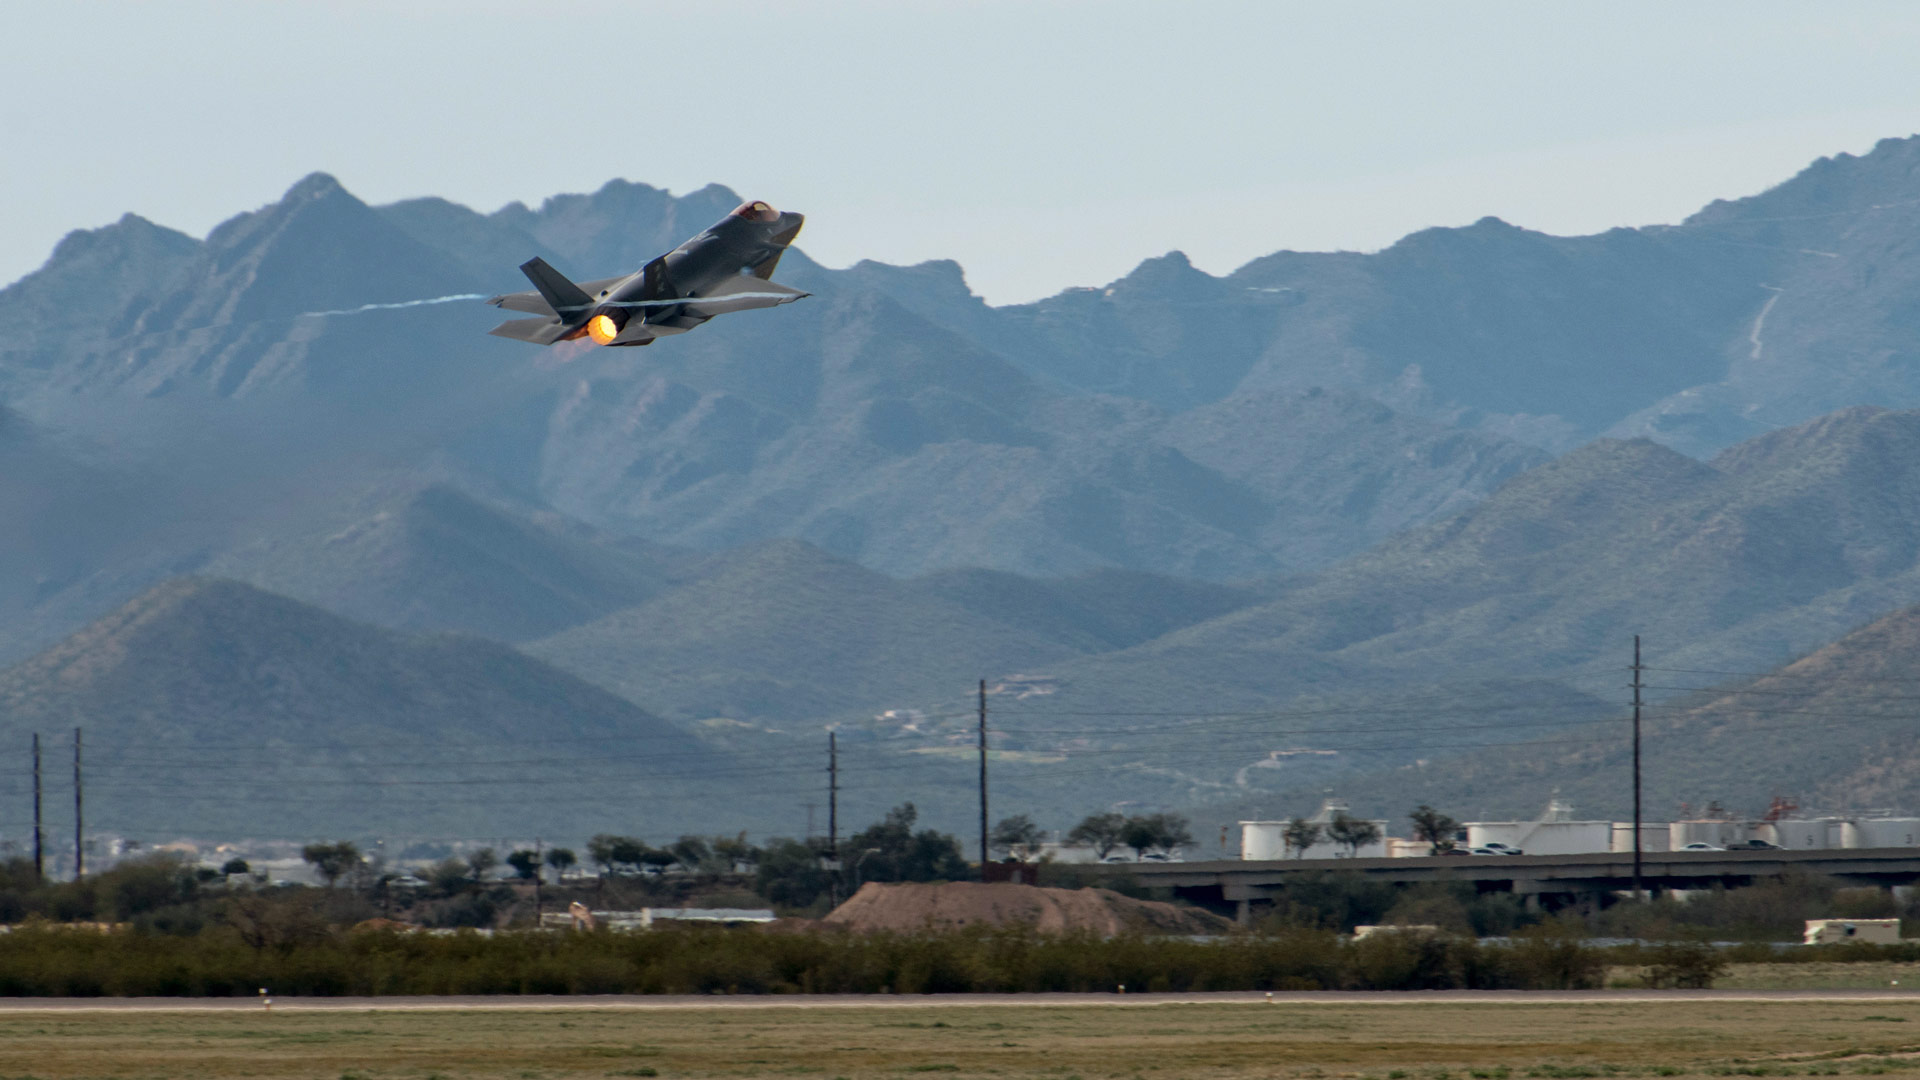 An F-35A takes off from Davis-Monthan Air Force base in Tucson during the annual Heritage Flight Training course,  Feb. 27, 2020.